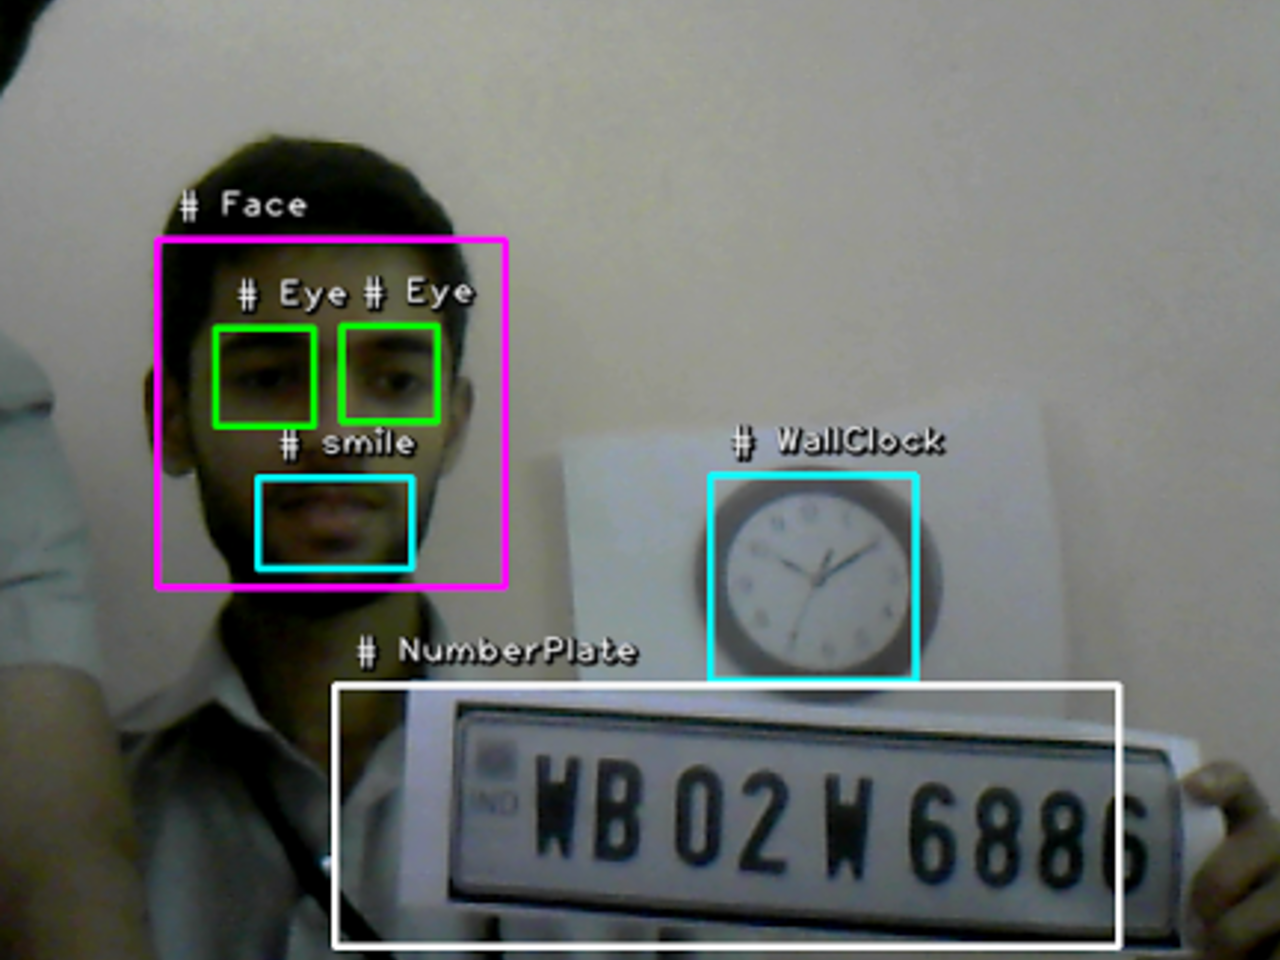 Controlled Object Recognition